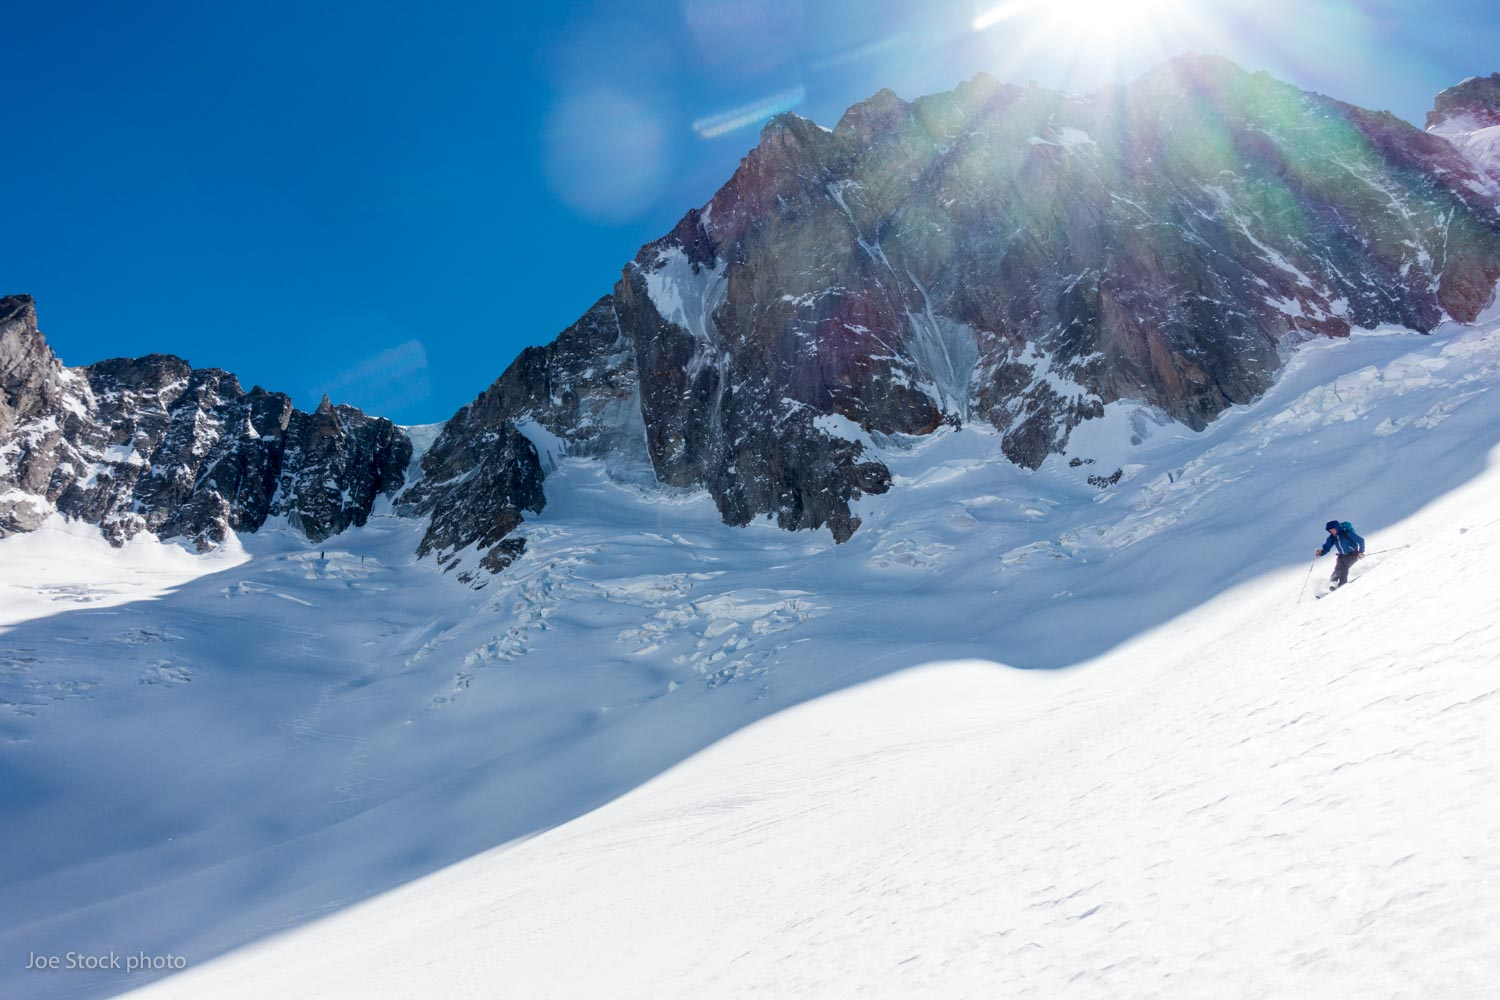 Eric Larson skiing below the 4,000-foot north face of the Grandes Jorasses, one of the six great north faces of the Alps.